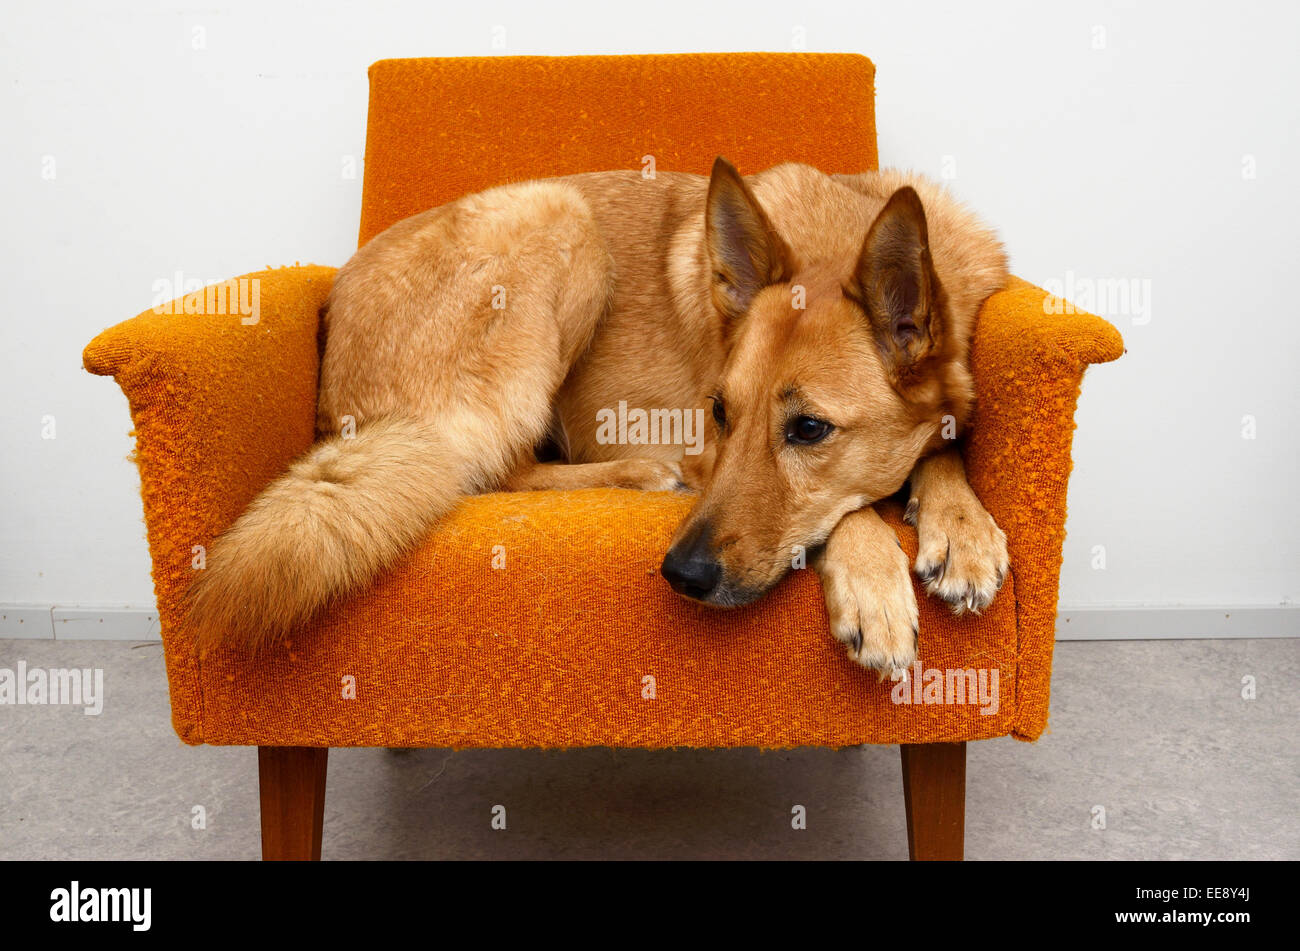 brown mongrel dog lying in the orange chair - Stock Image